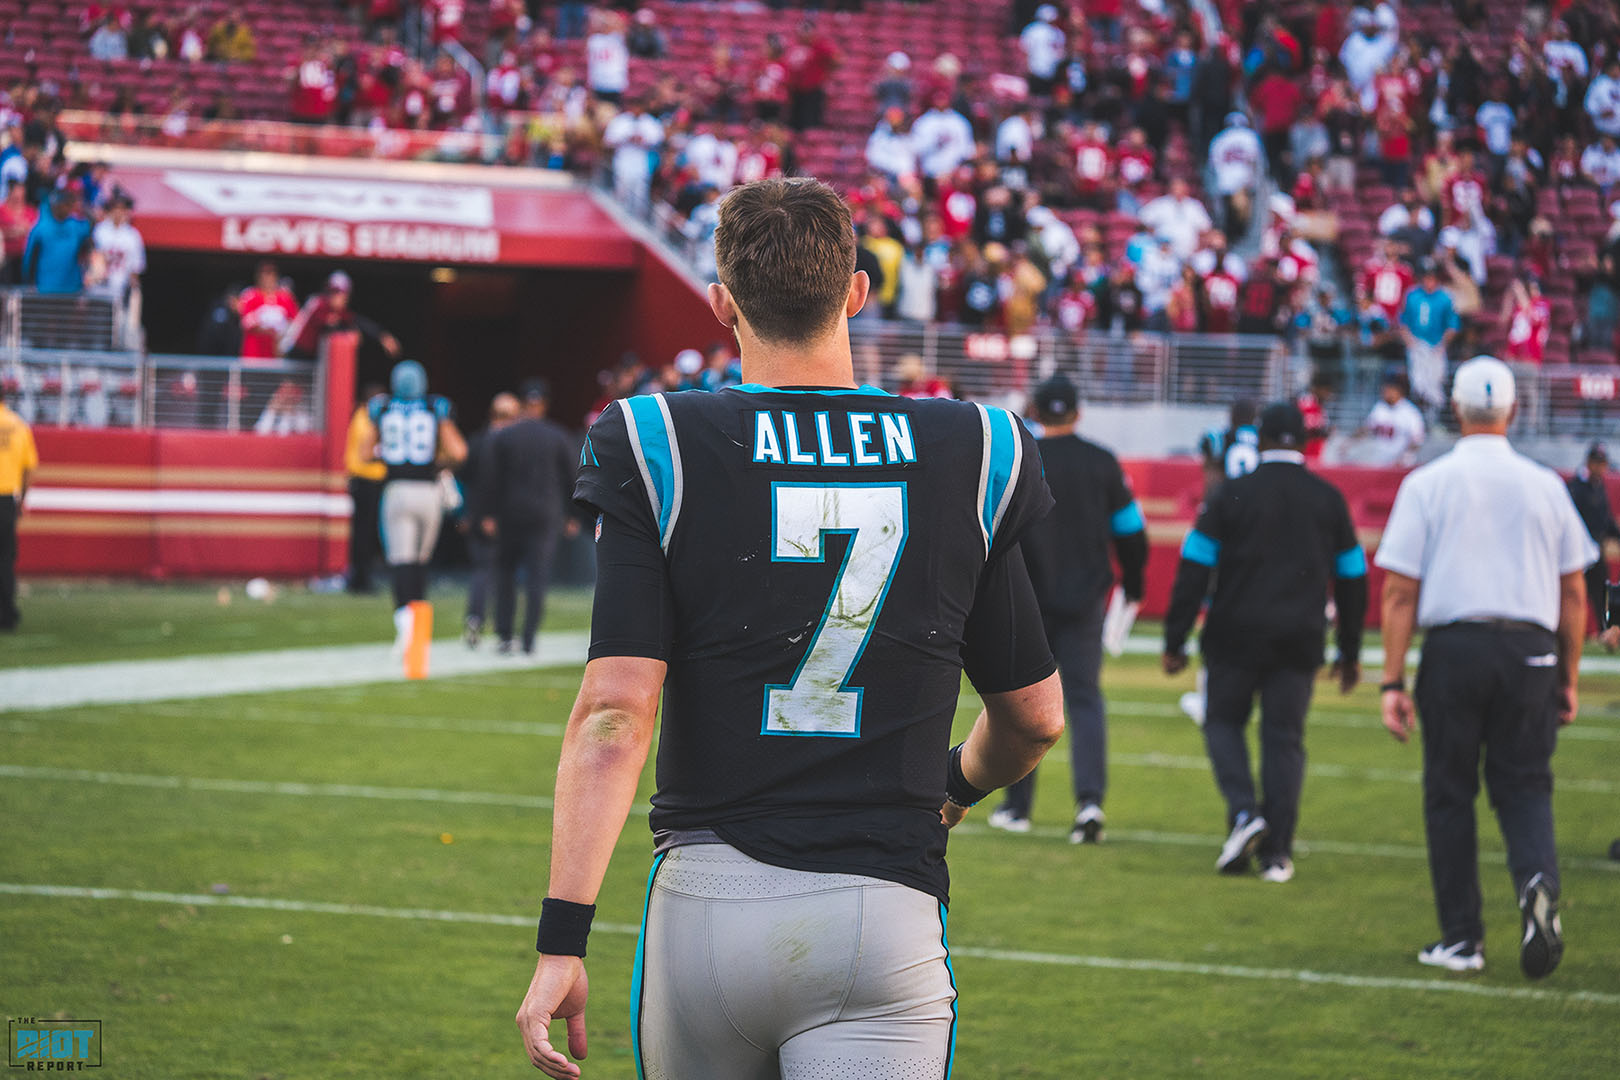 Kyle Allen's Growing Pains May Cost The Panthers The 2019 Season